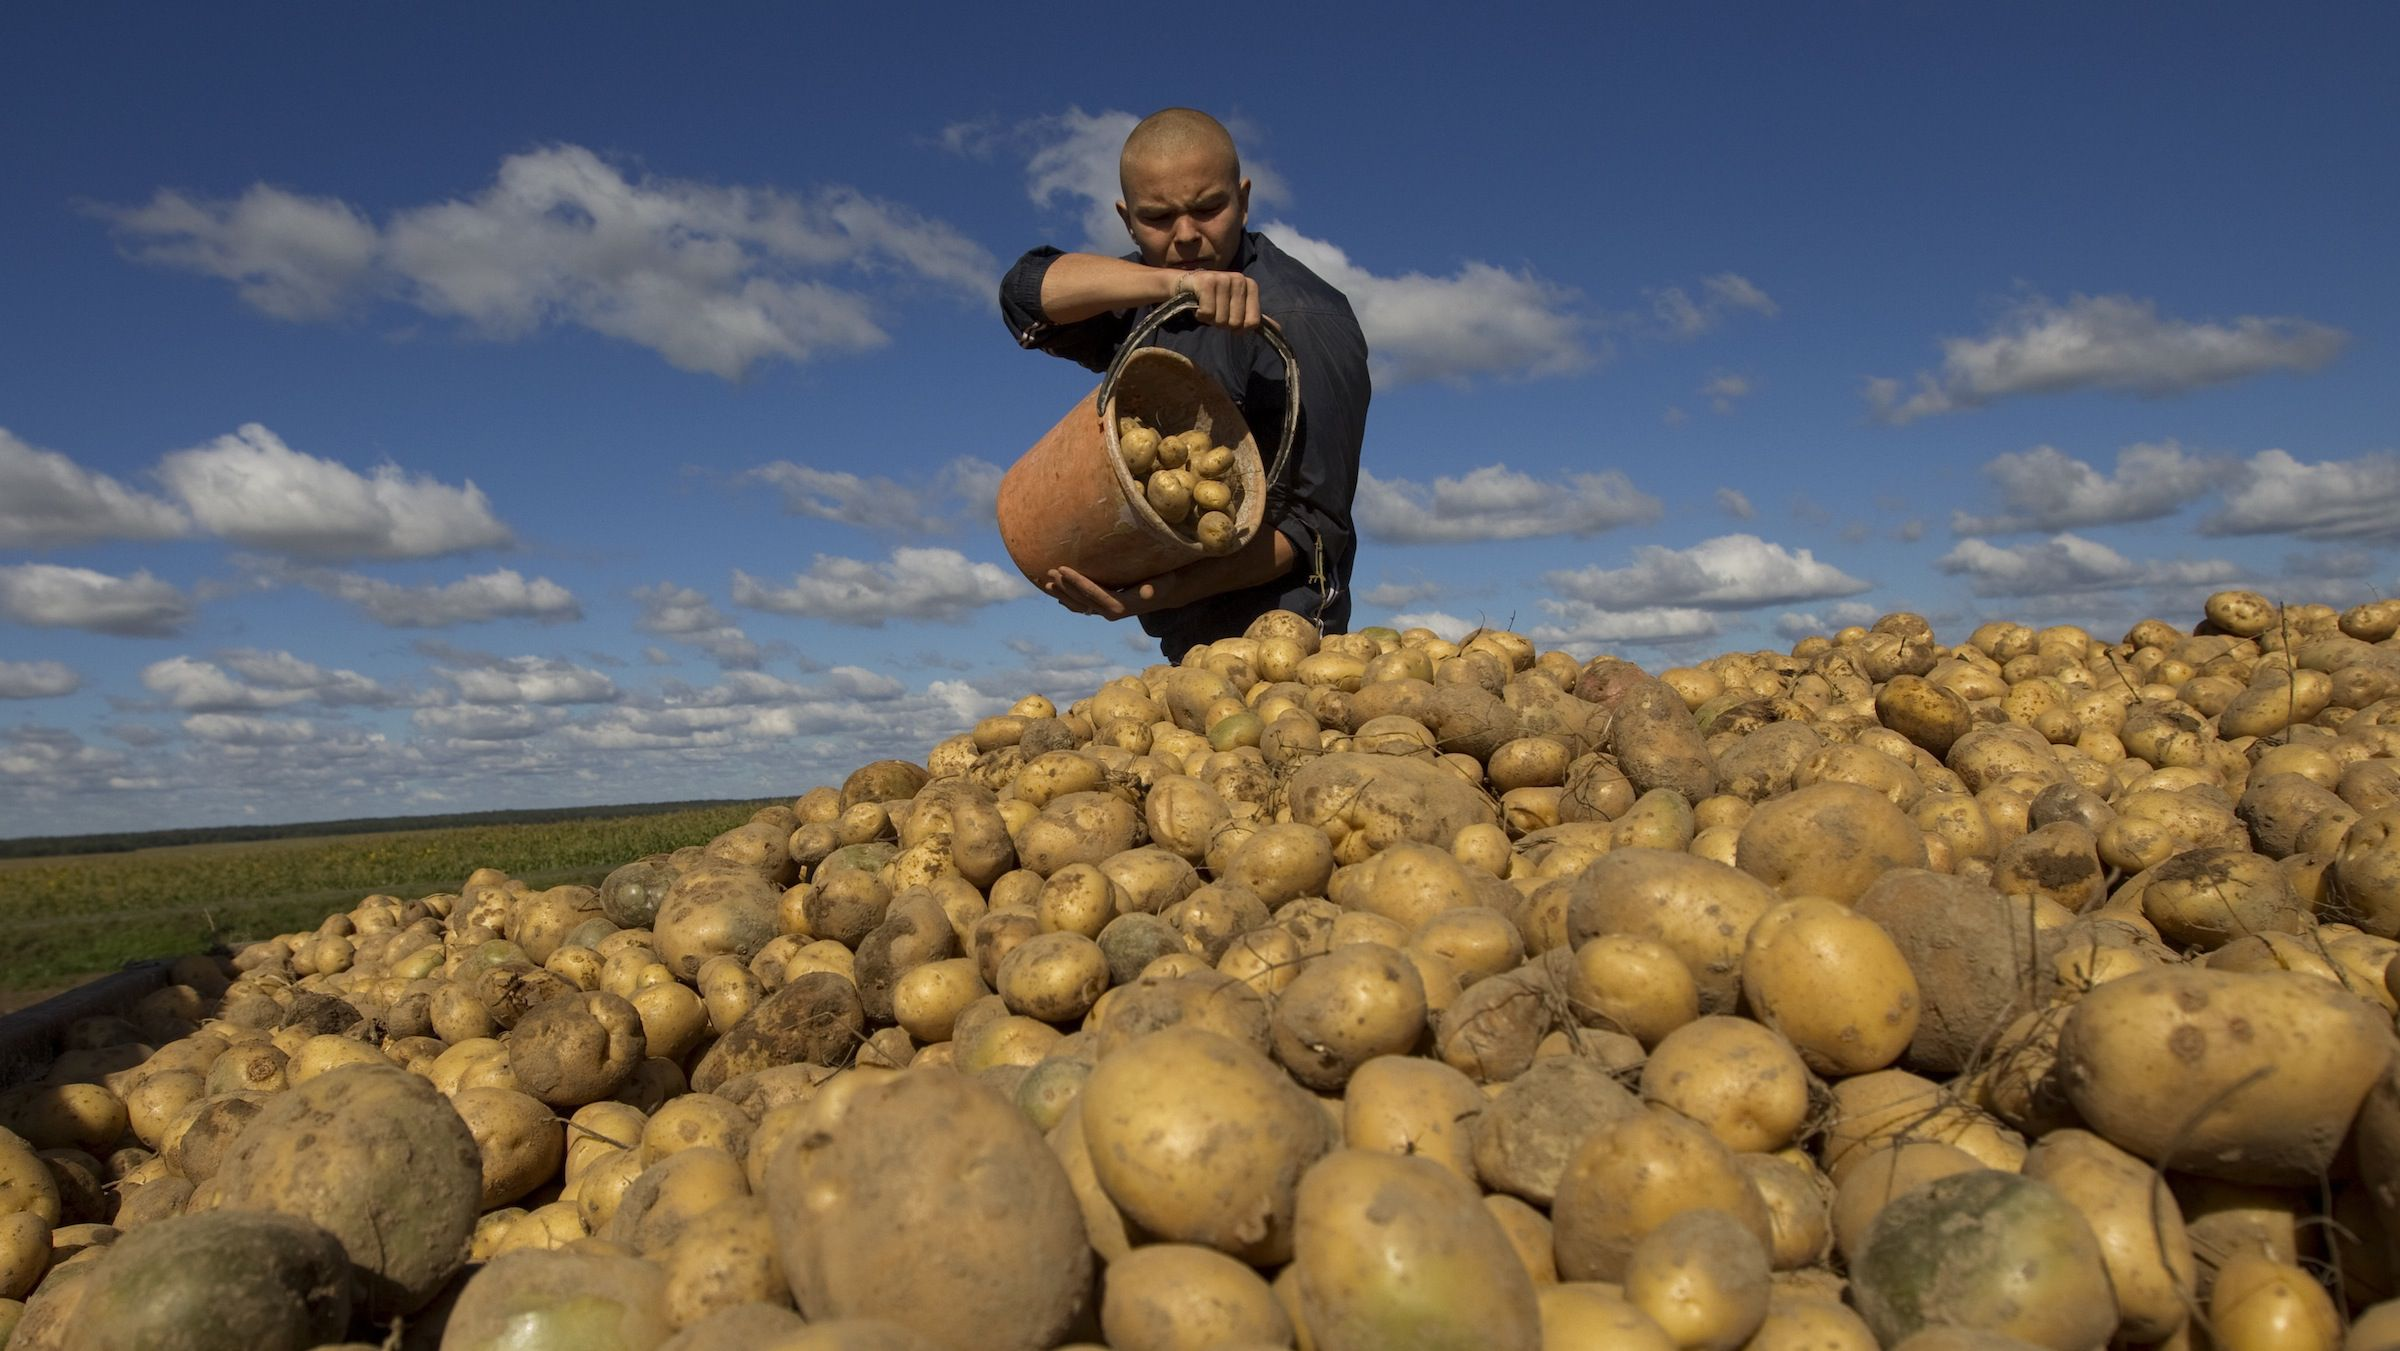 A Belarussian student gathers and loads potatoes on a field in a state-owned farm near the village of Timki, some 80 km (50 miles) east of Minsk September 5, 2013. The students receive 60,000 rubles ($5.5) for four hours' work in harvesting the farm, as well as vegetables for their schools' kitchens. REUTERS/Vasily Fedosenko (BELARUS - Tags: AGRICULTURE SOCIETY EDUCATION) - RTX1381Y